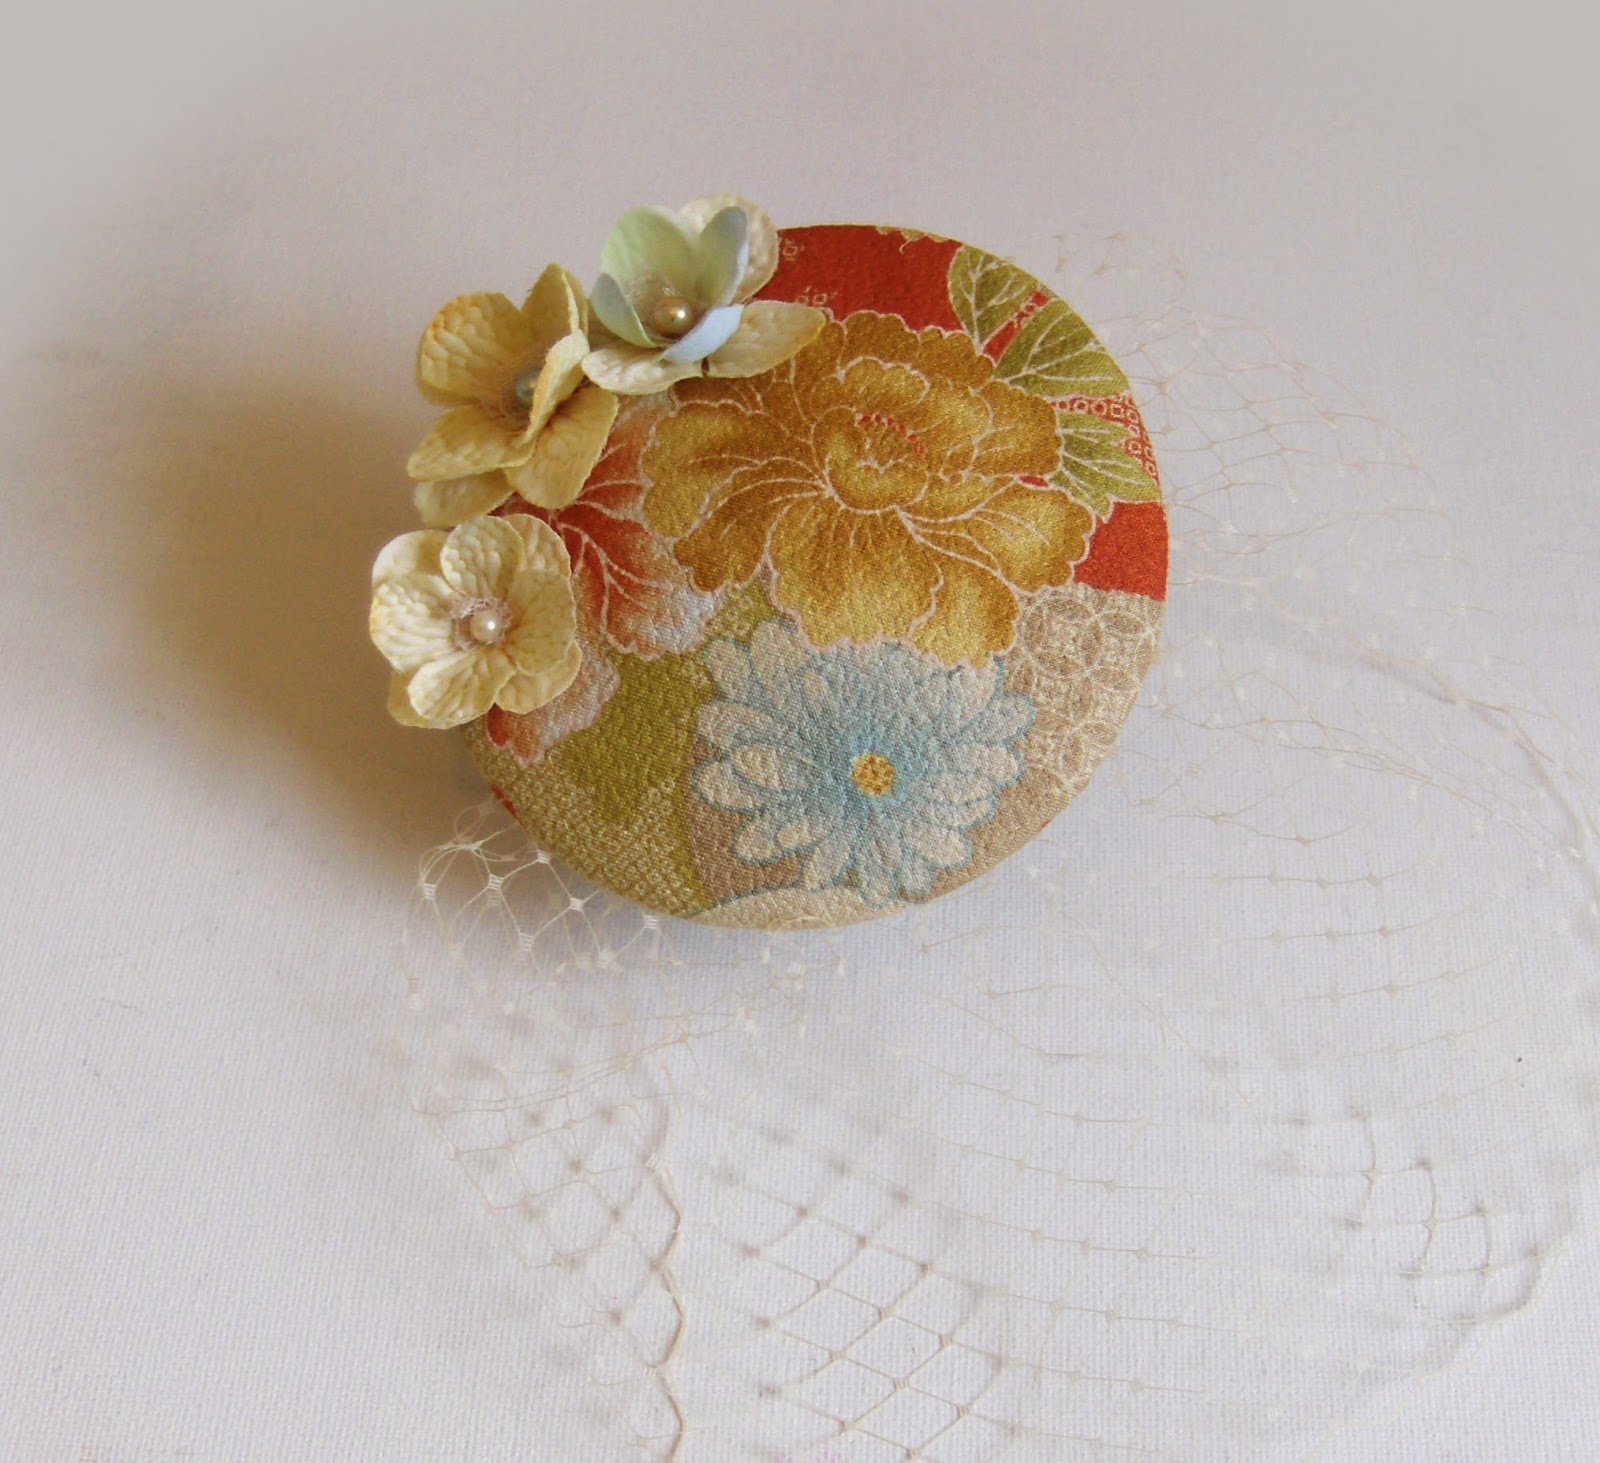 http://folksy.com/items/4415962-Cocktail-hat-gold-sakura-blossoms-